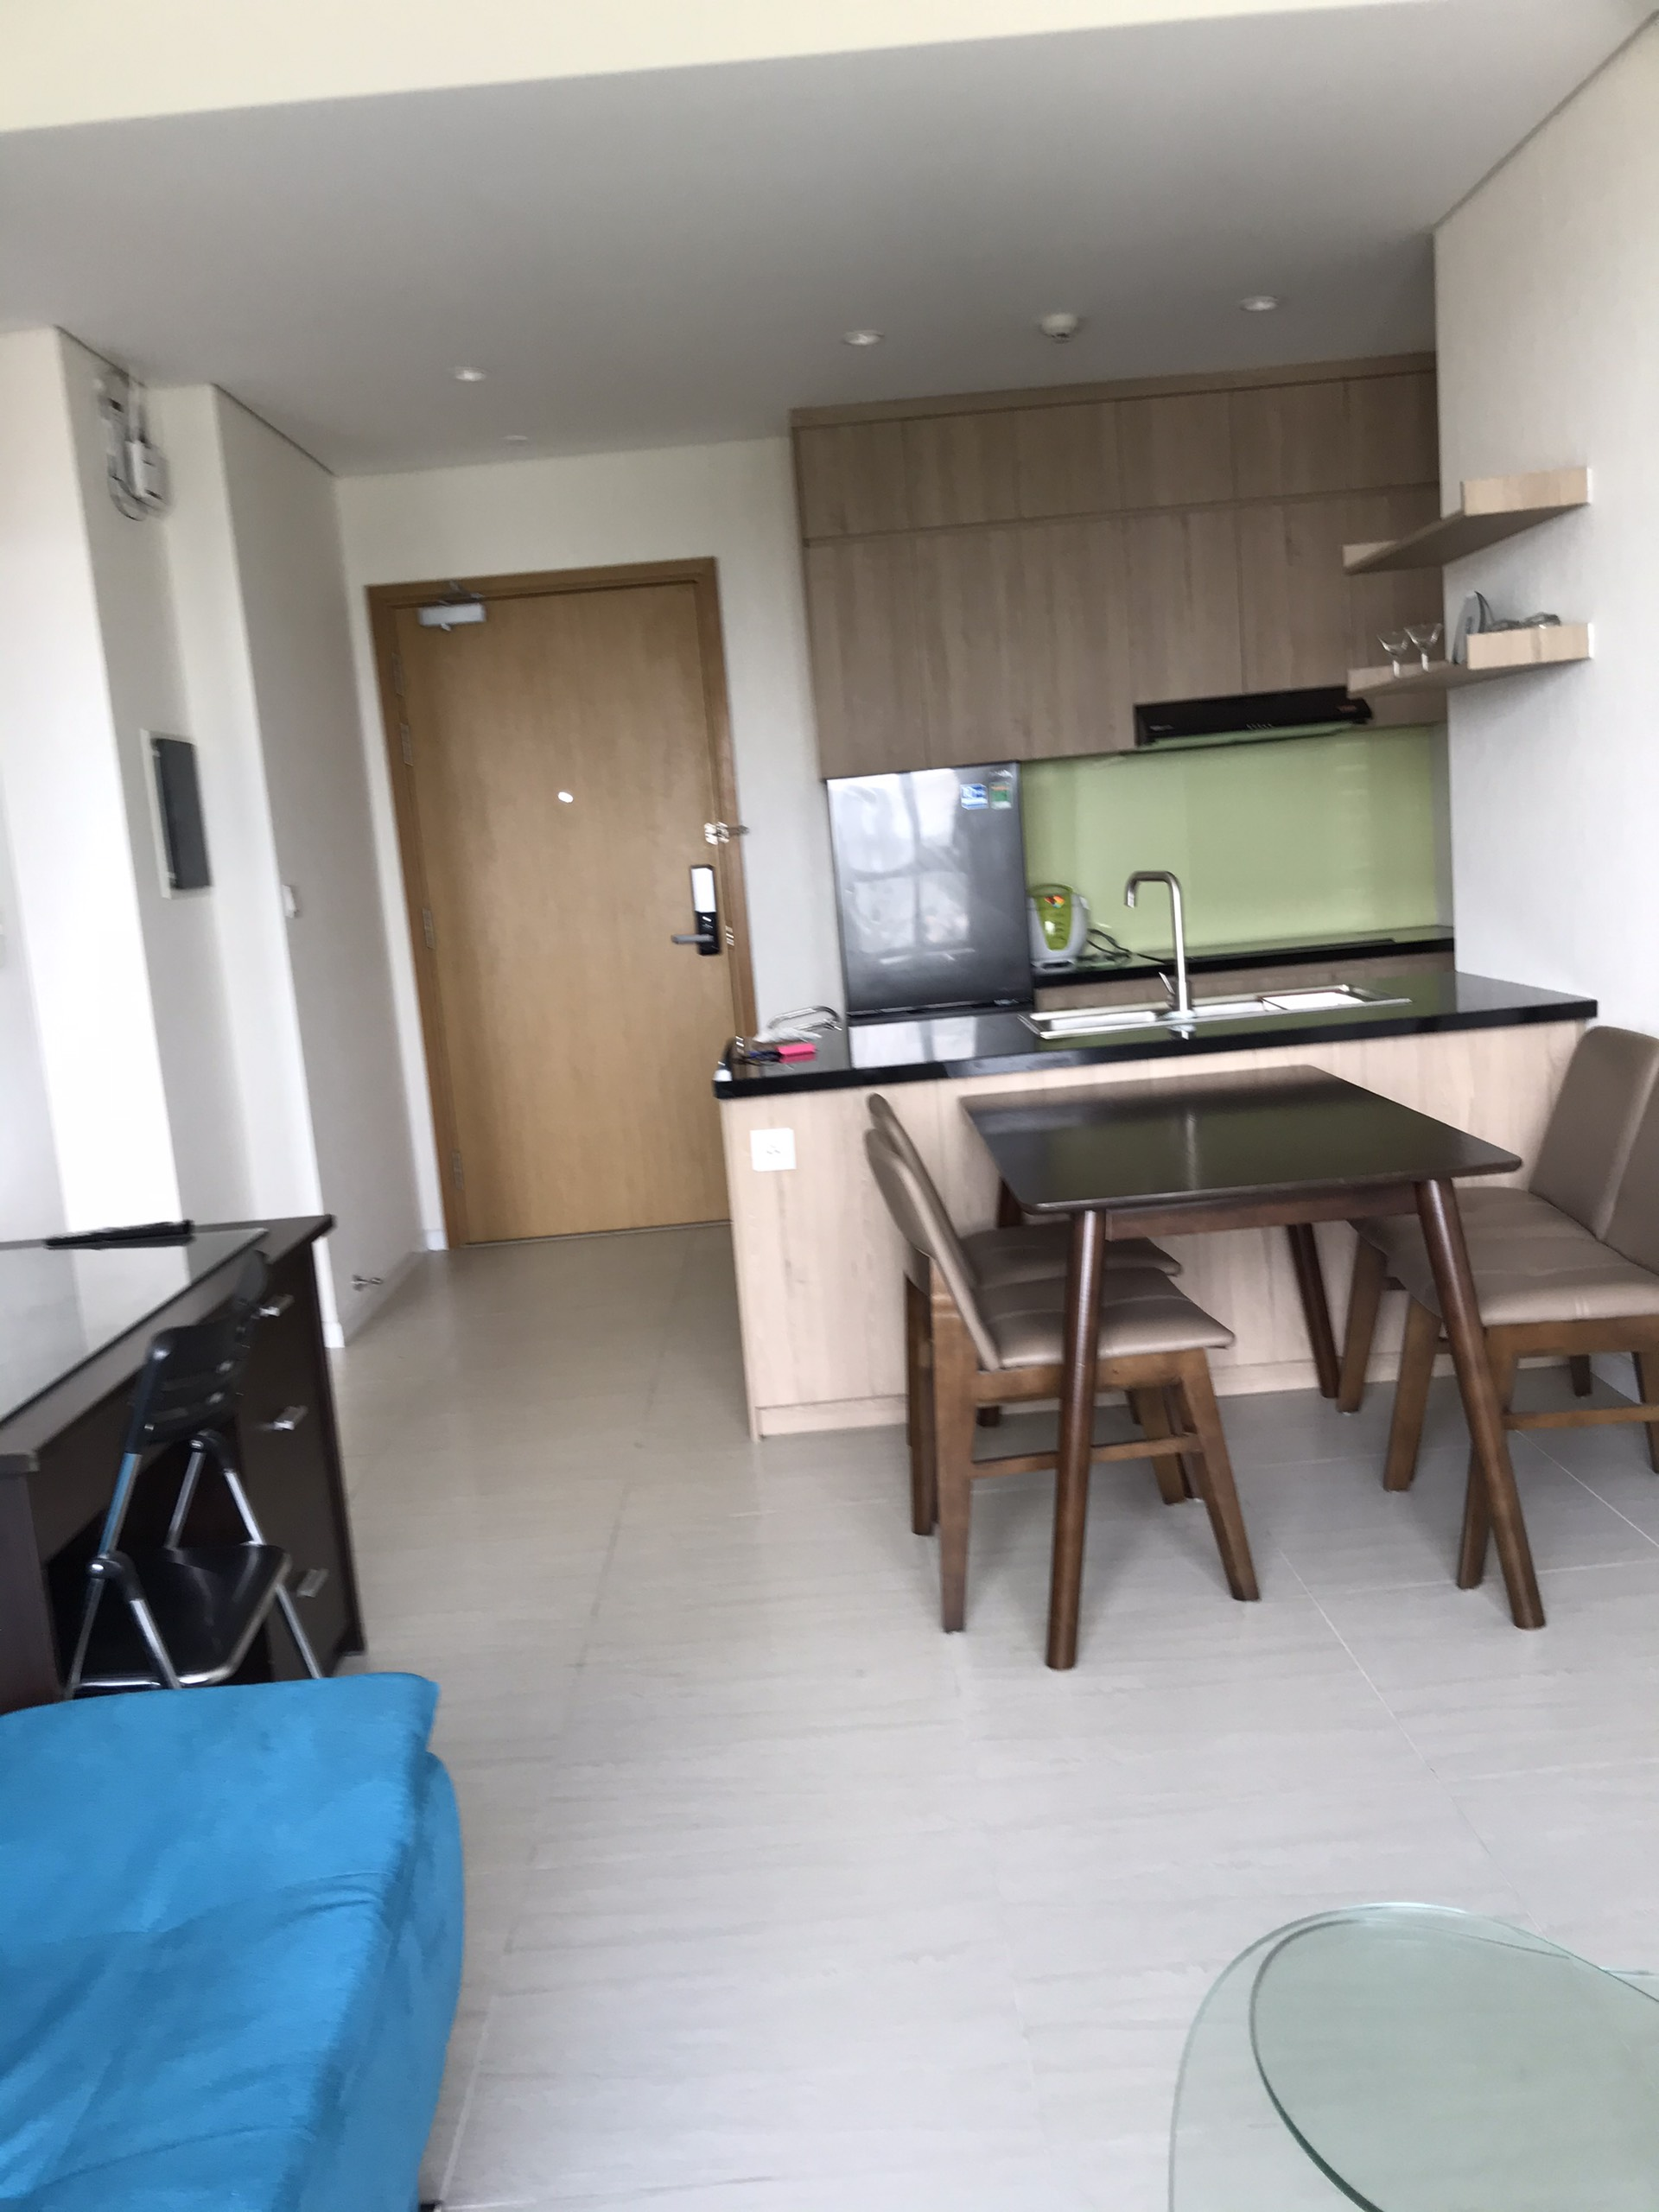 DI0987 - Diamond Island Apartment For Rent & Sale in Ho Chi Minh City - 1 bedroom